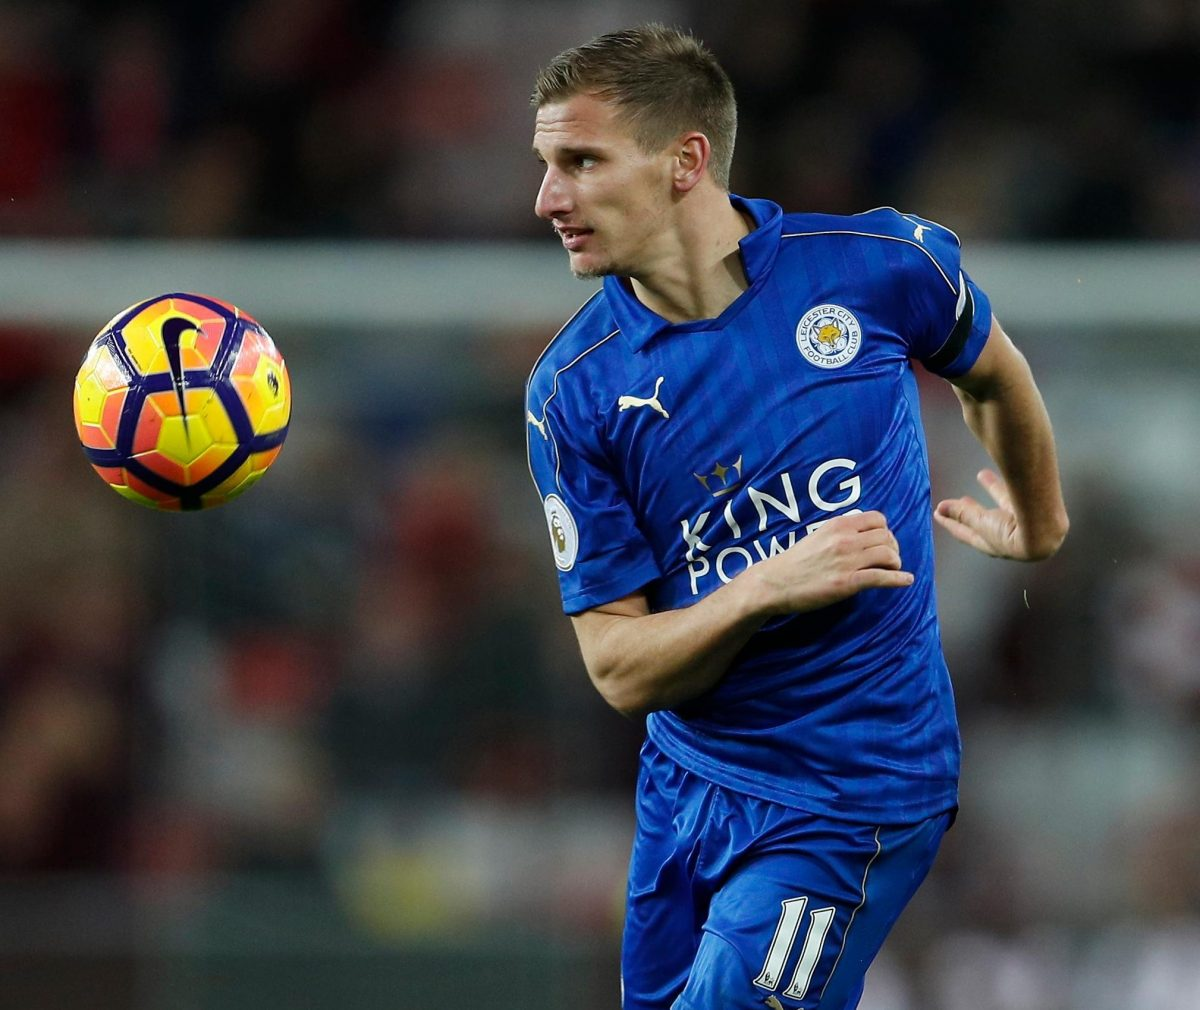 Albrighton Aiming To Make Amends